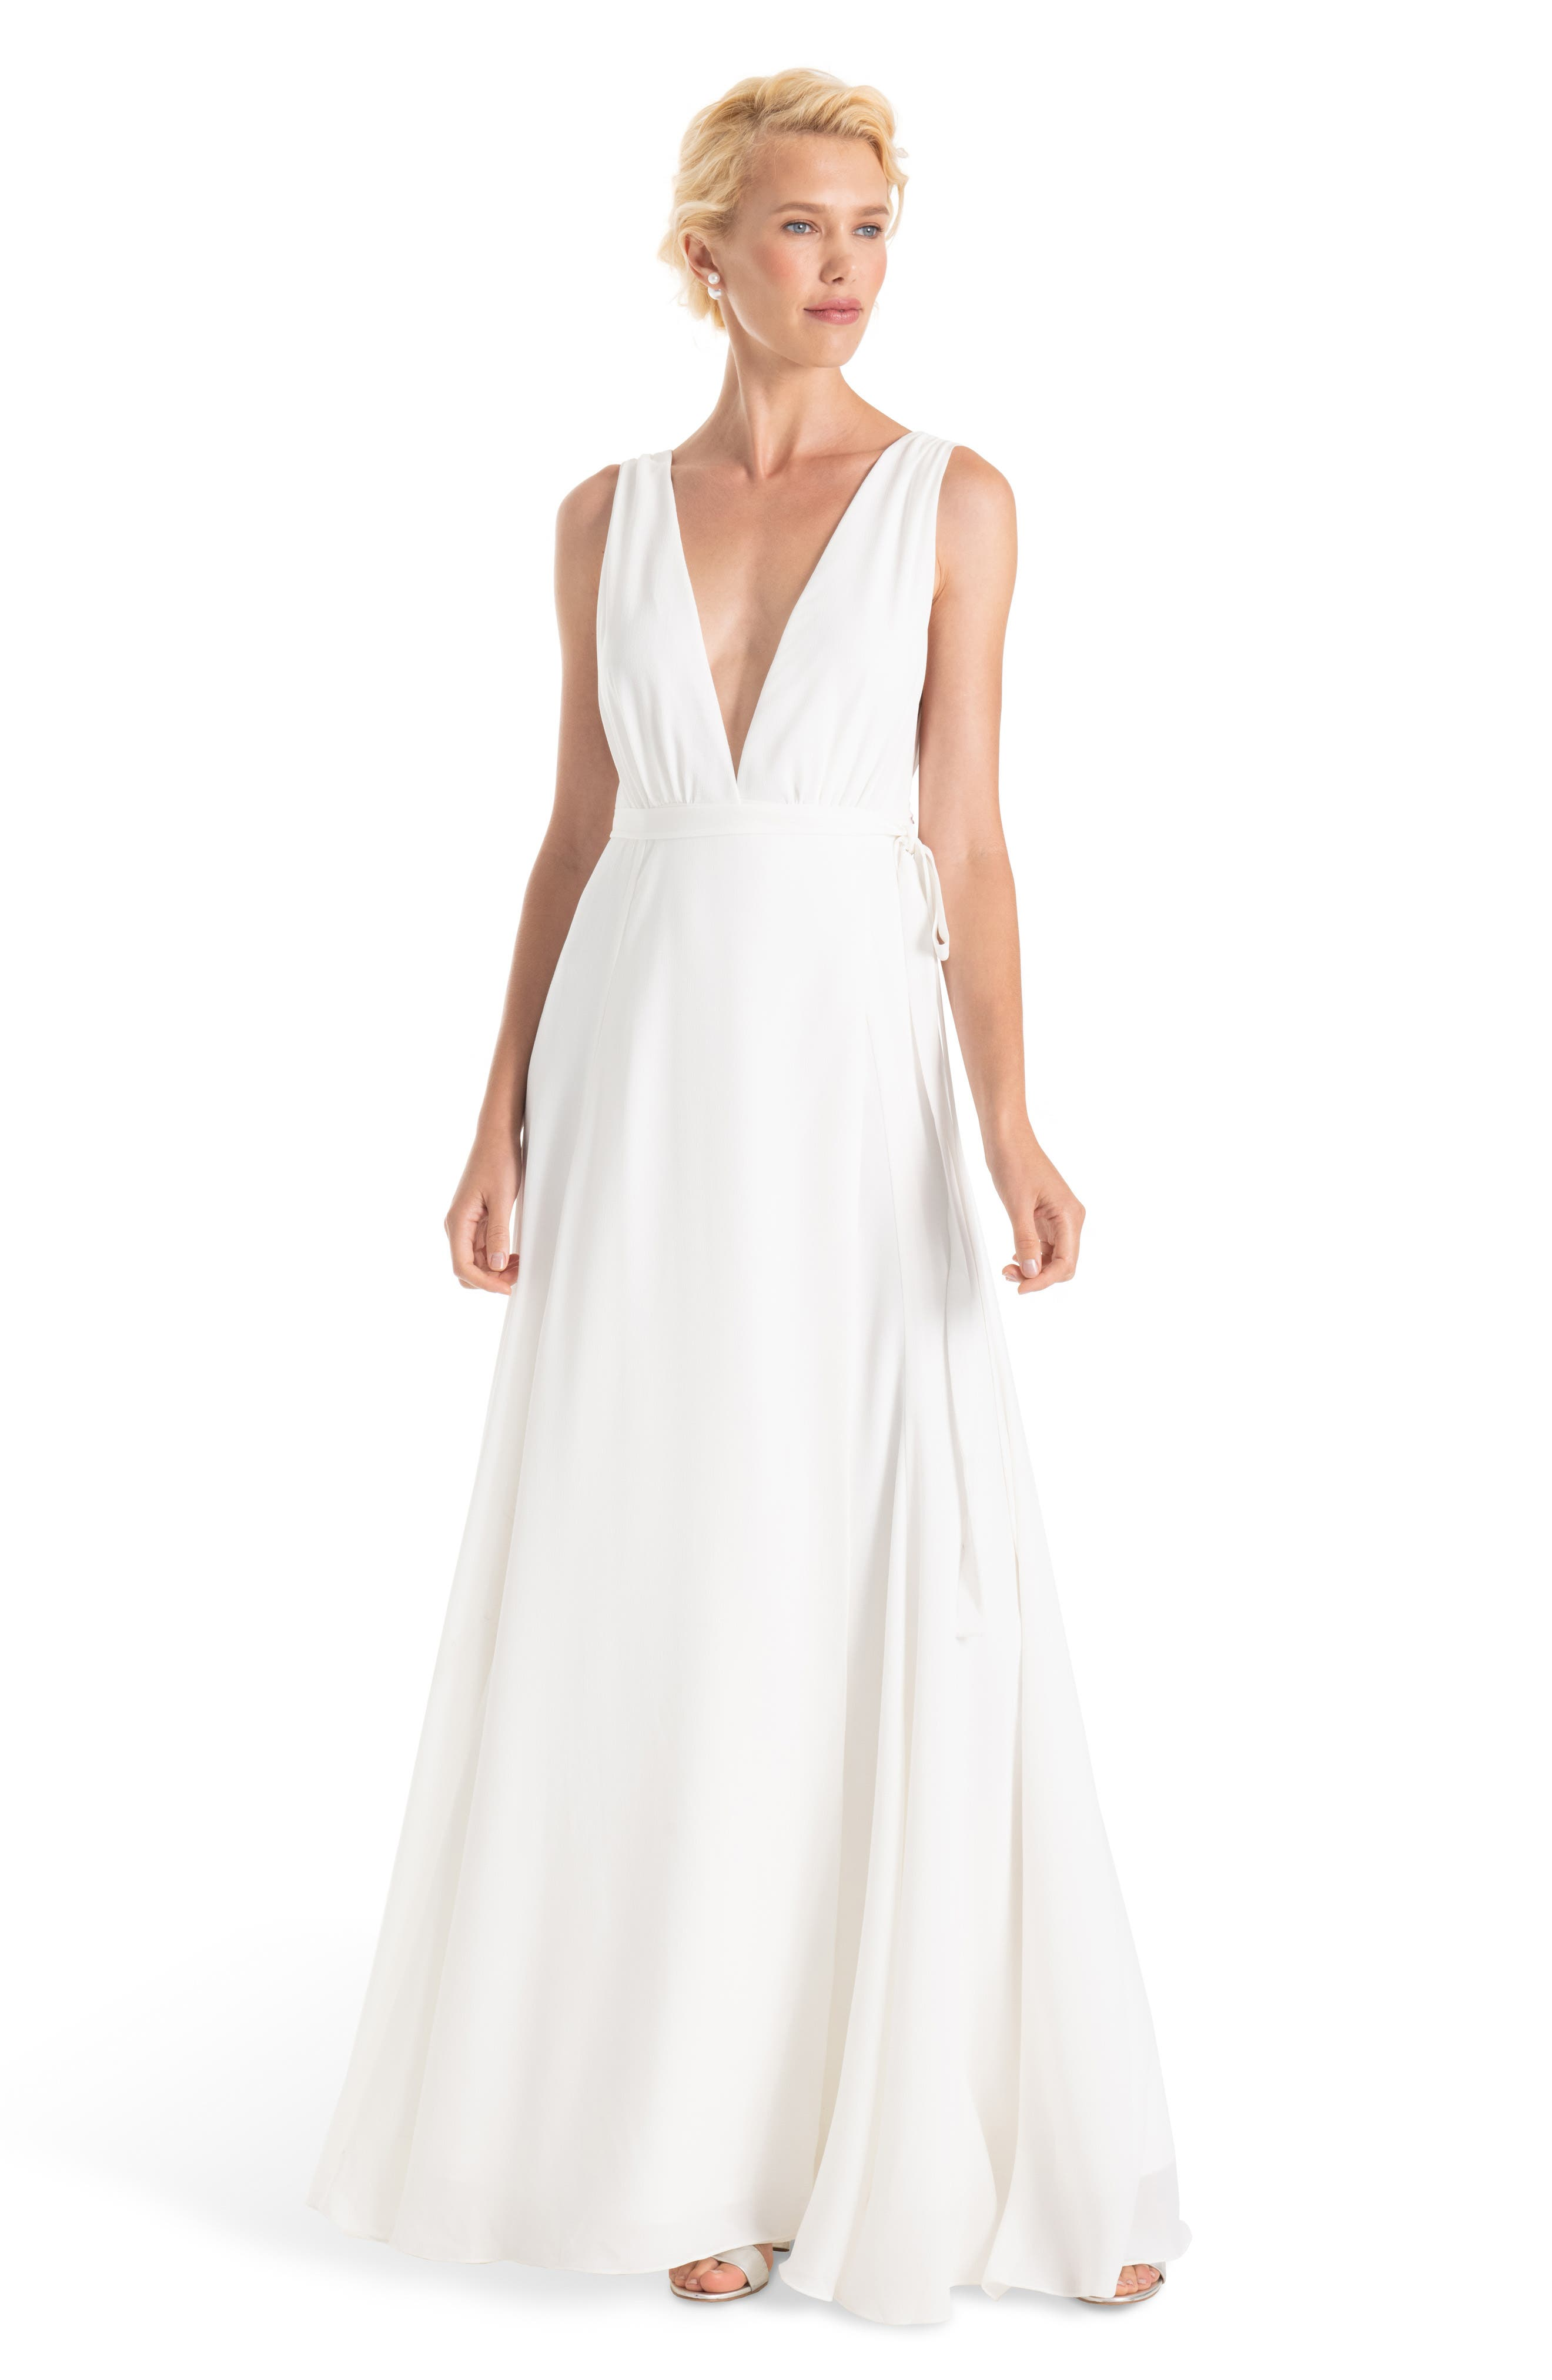 JOANNA AUGUST Jagger Plunging Wrap Dress, Main, color, WHITE